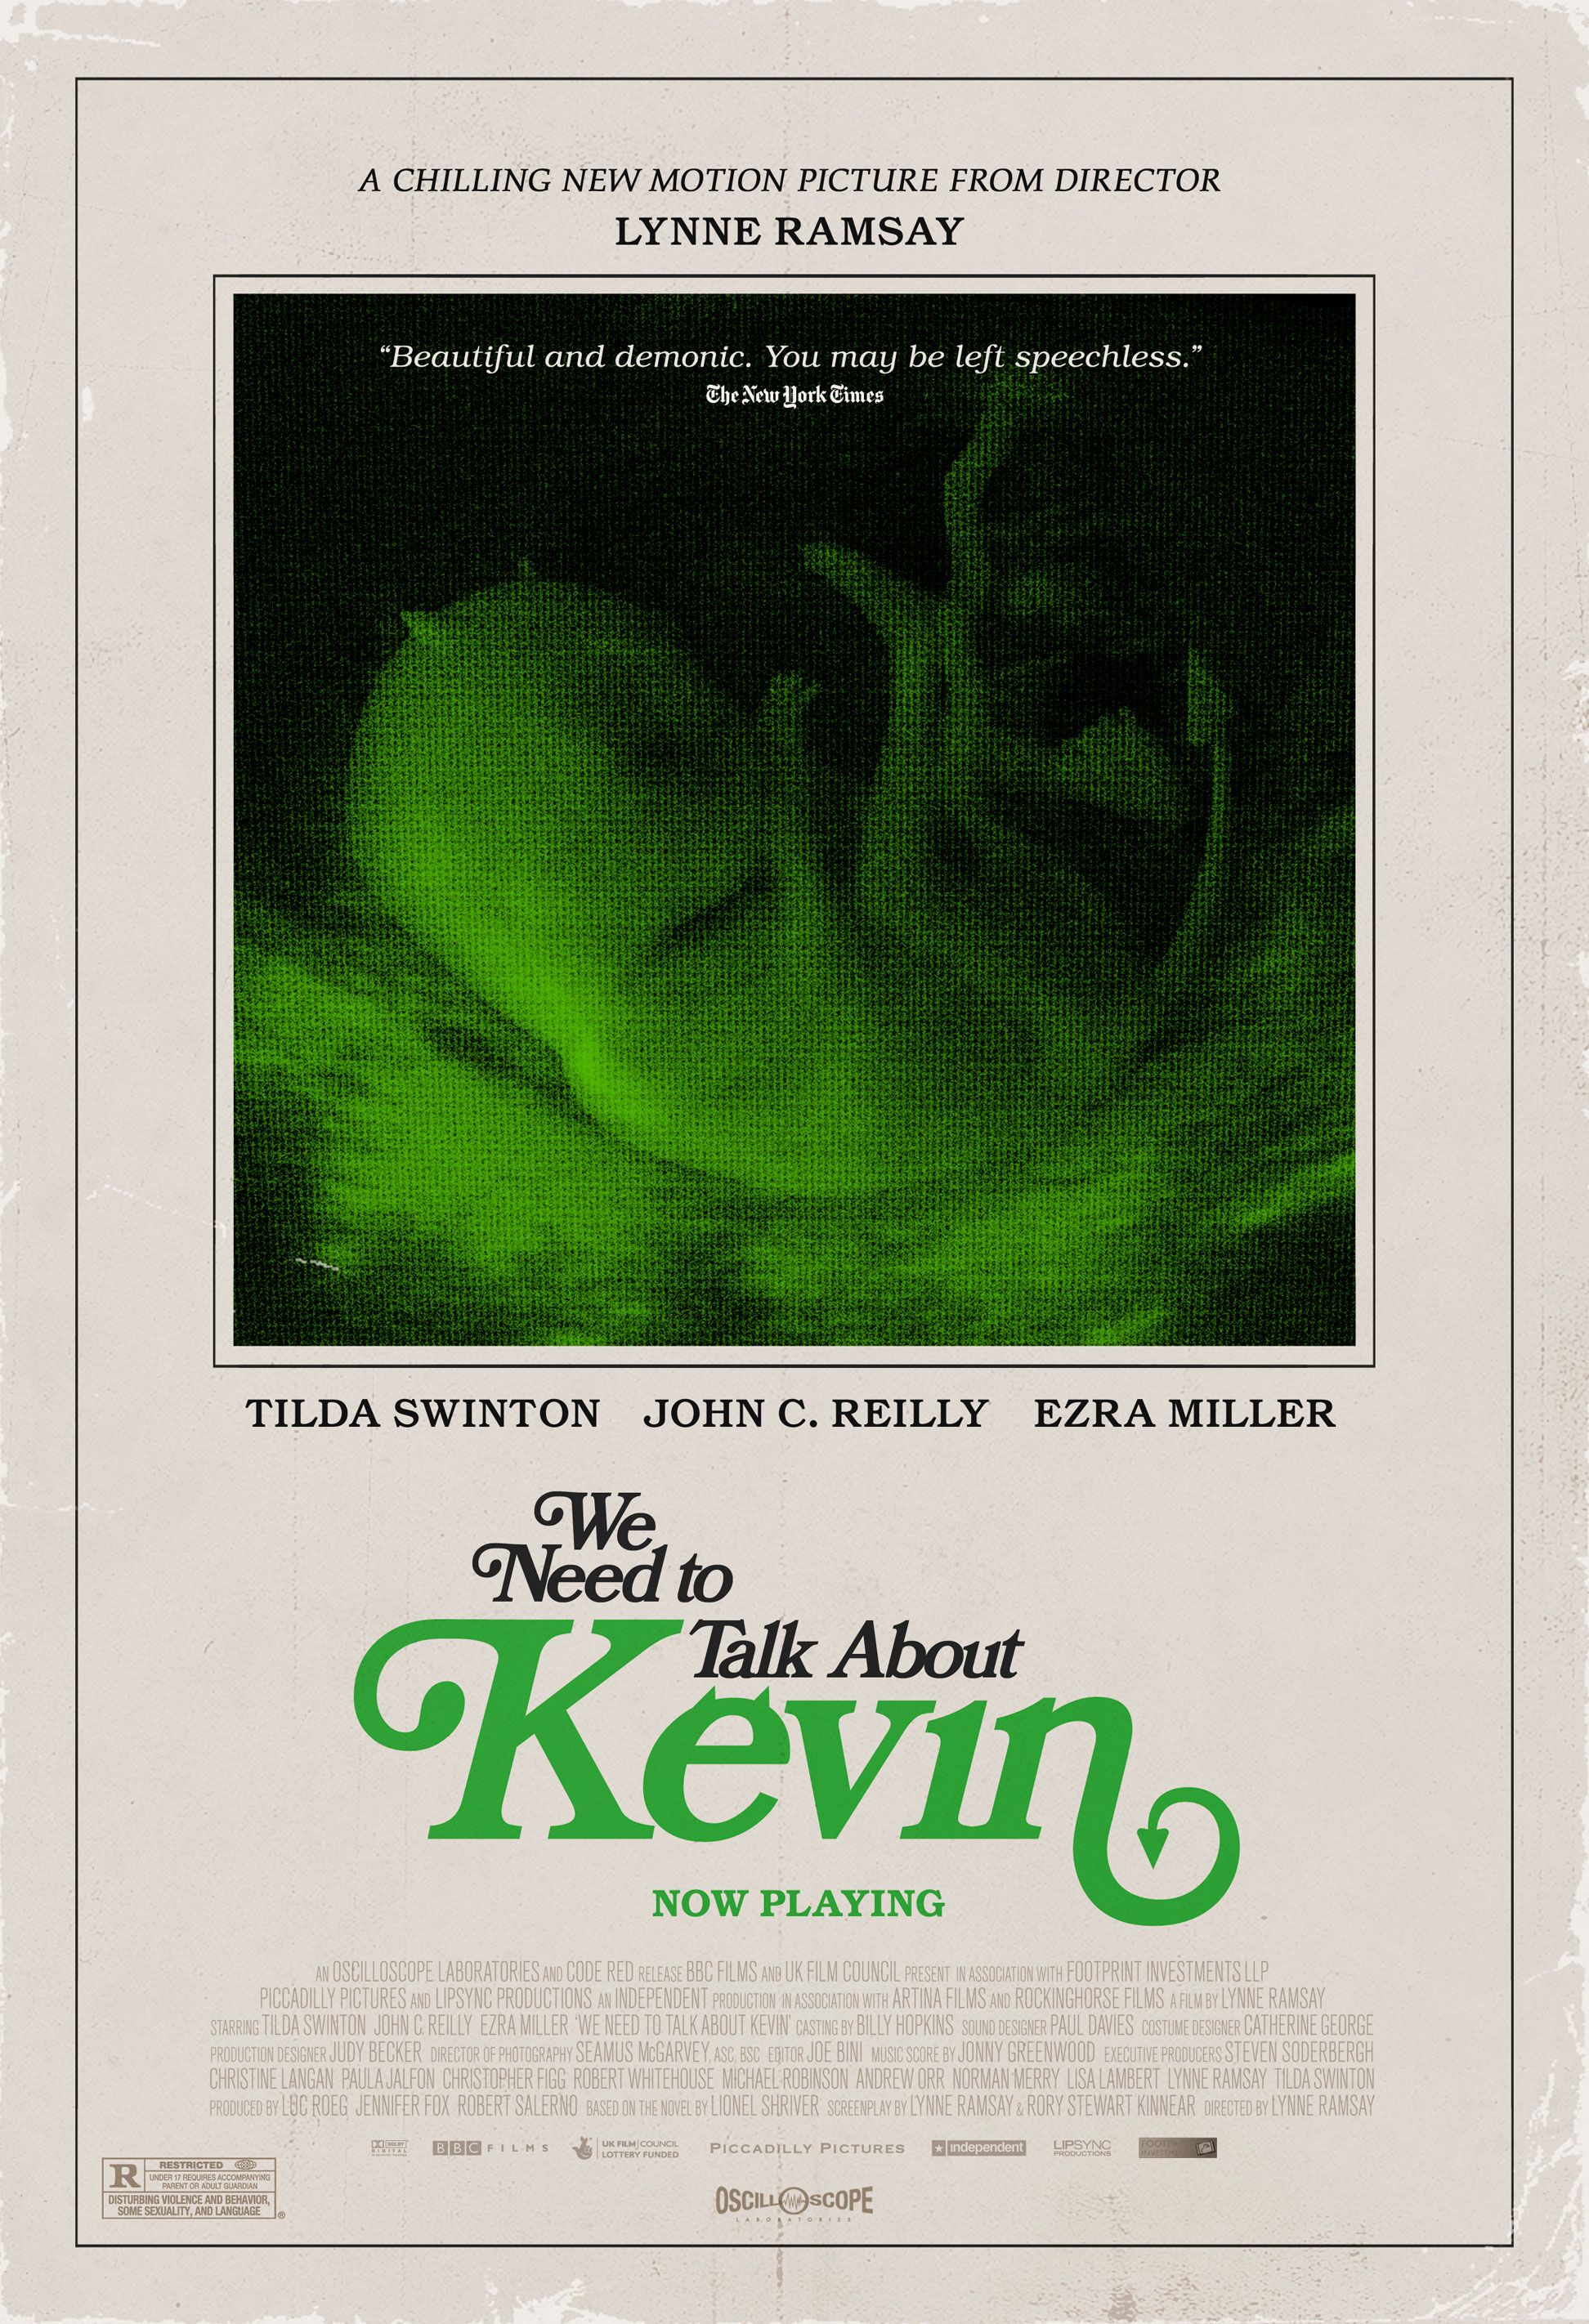 We Need To Talk About Kids And >> We Need To Talk About Kevin Friends With Kids And God Bless